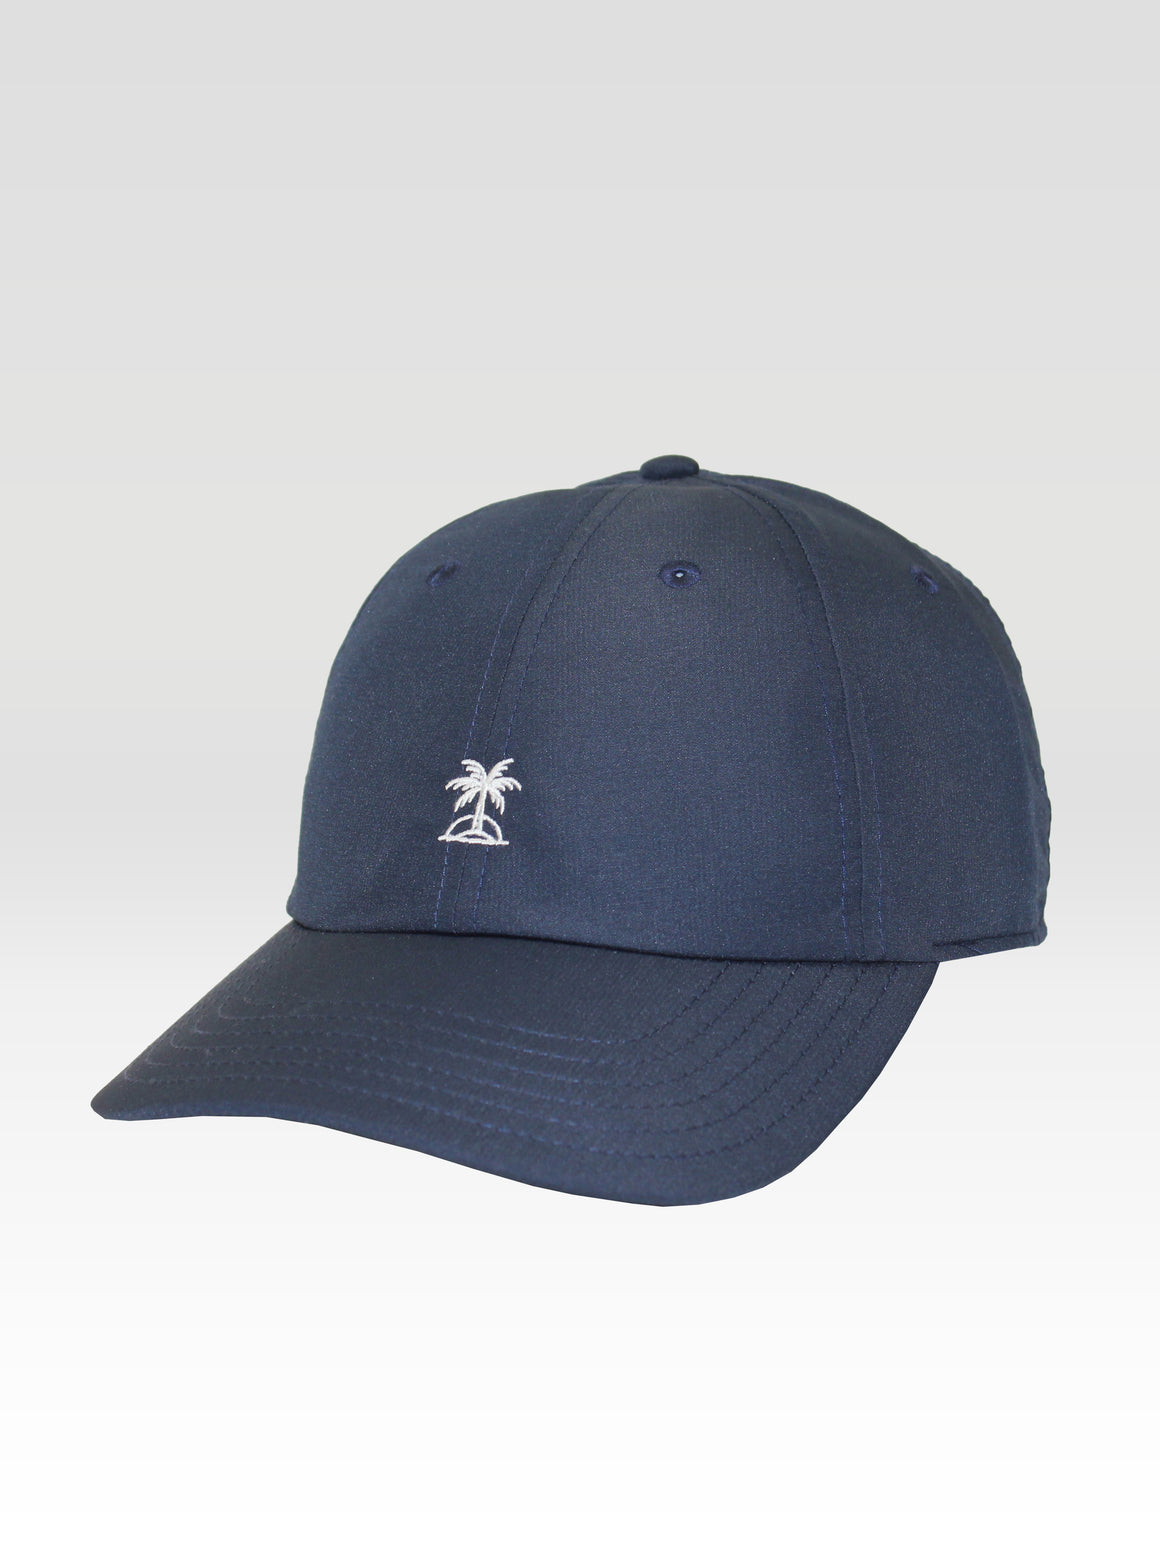 Westside Golf Low Pro - Navy (White)